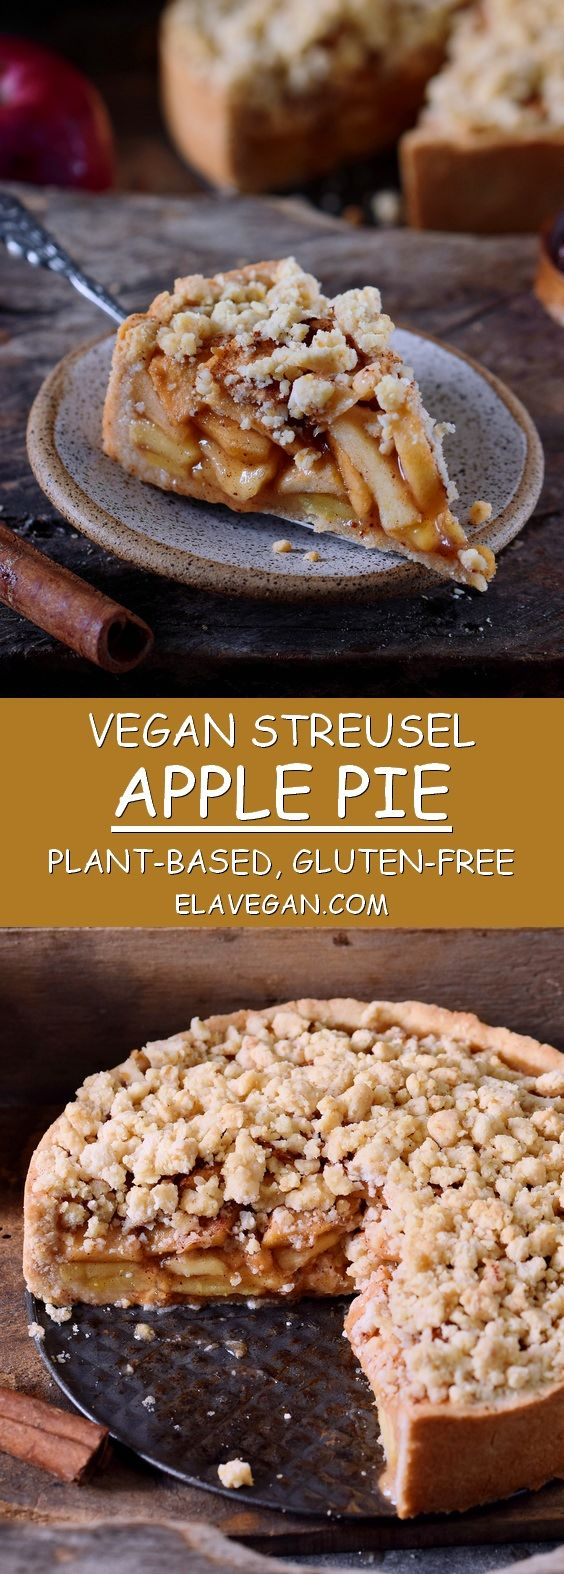 This vegan apple pie with streusel is the perfect fall dessert. The recipe is ve…